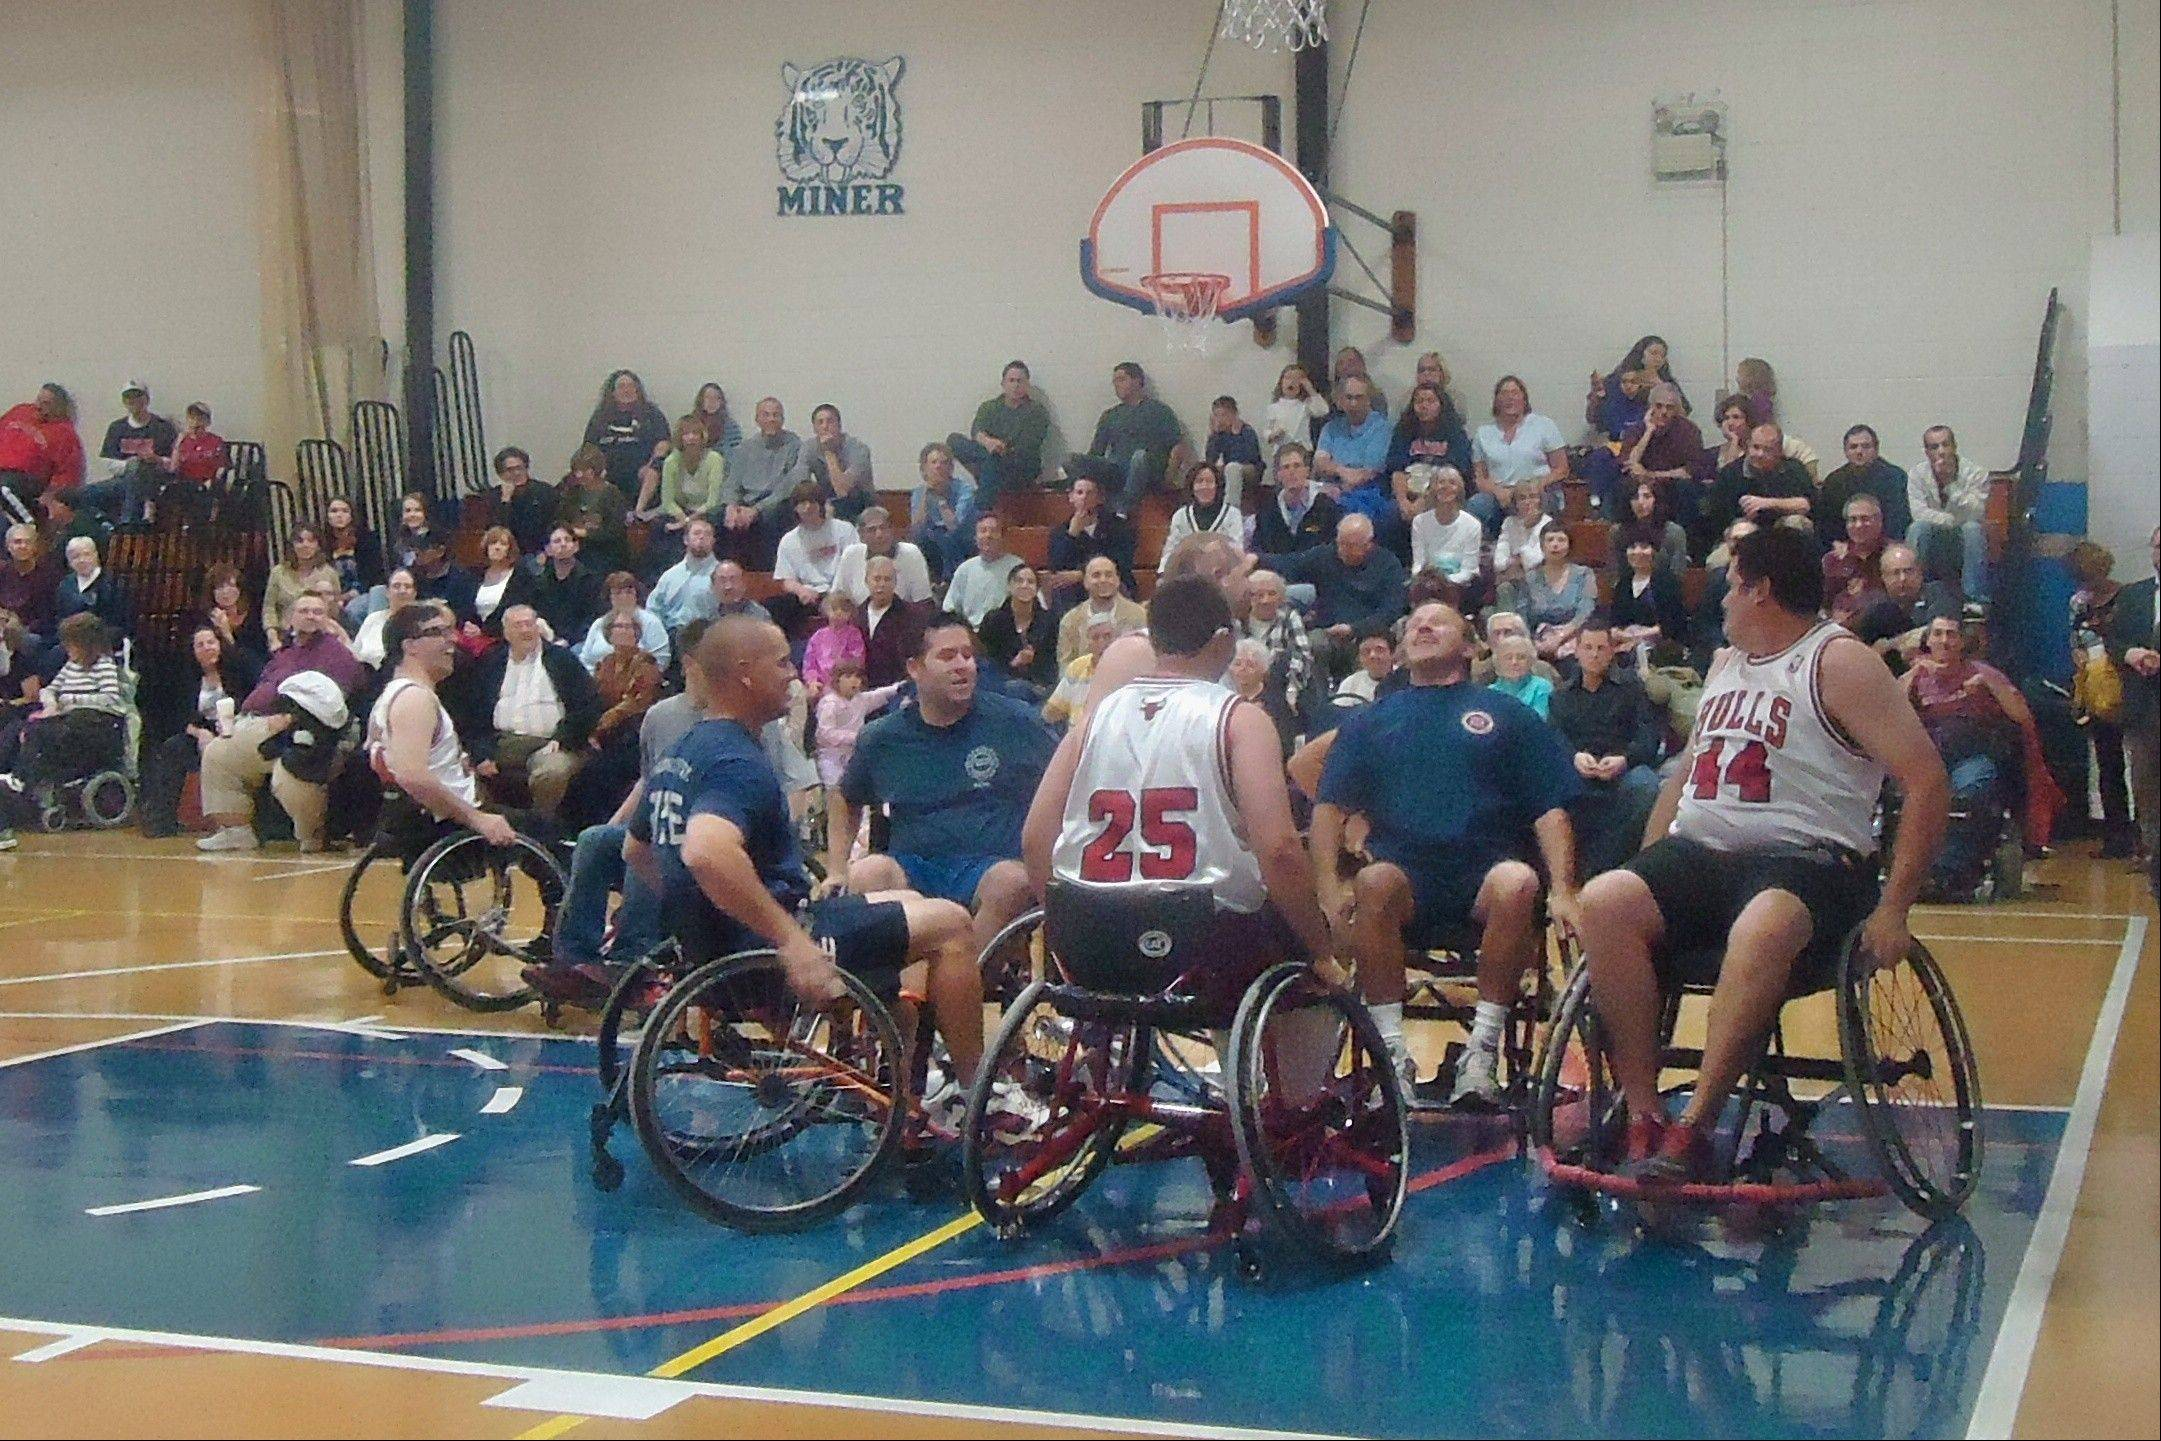 The Chicago Wheelchair Bulls will take on a team of Arlington Heights firefighters Saturday night during a fundraiser at St. Viator High School. The event raises money to support the Wheelchair Bulls and their efforts to make athletic opportunities available for kids with disabilities.